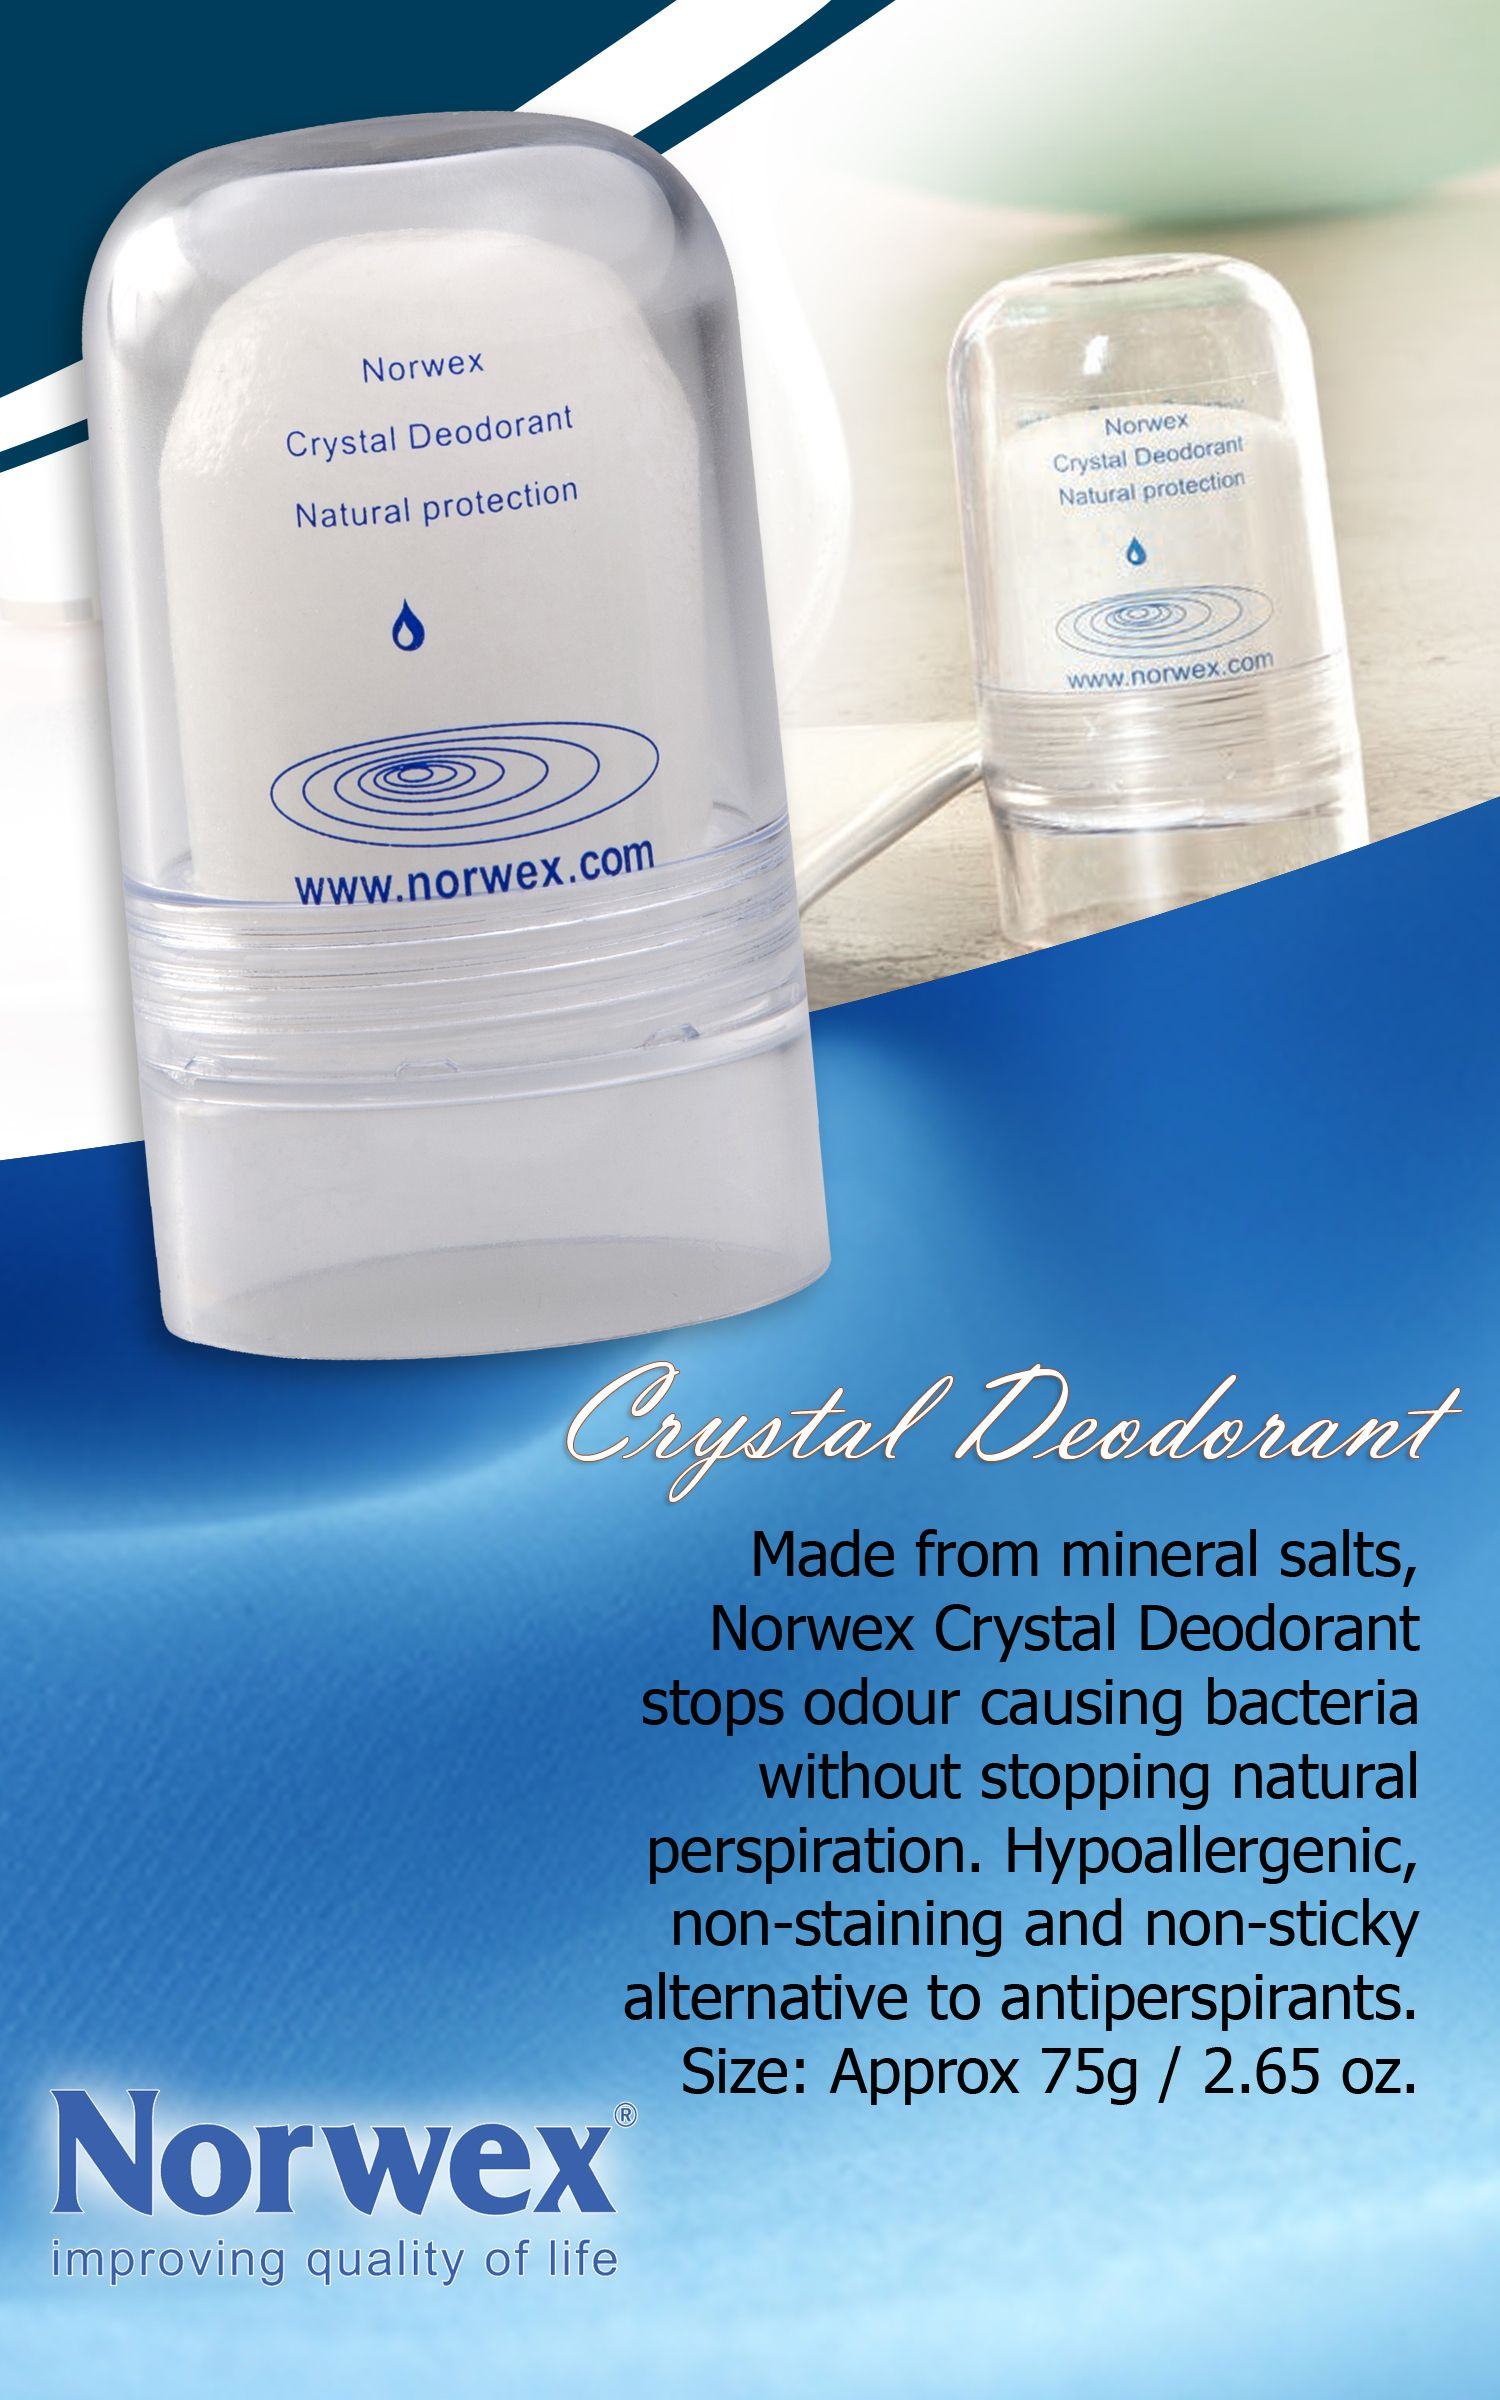 Norwex Deodorant Stone Is Made From Crystallized Natural Mineral